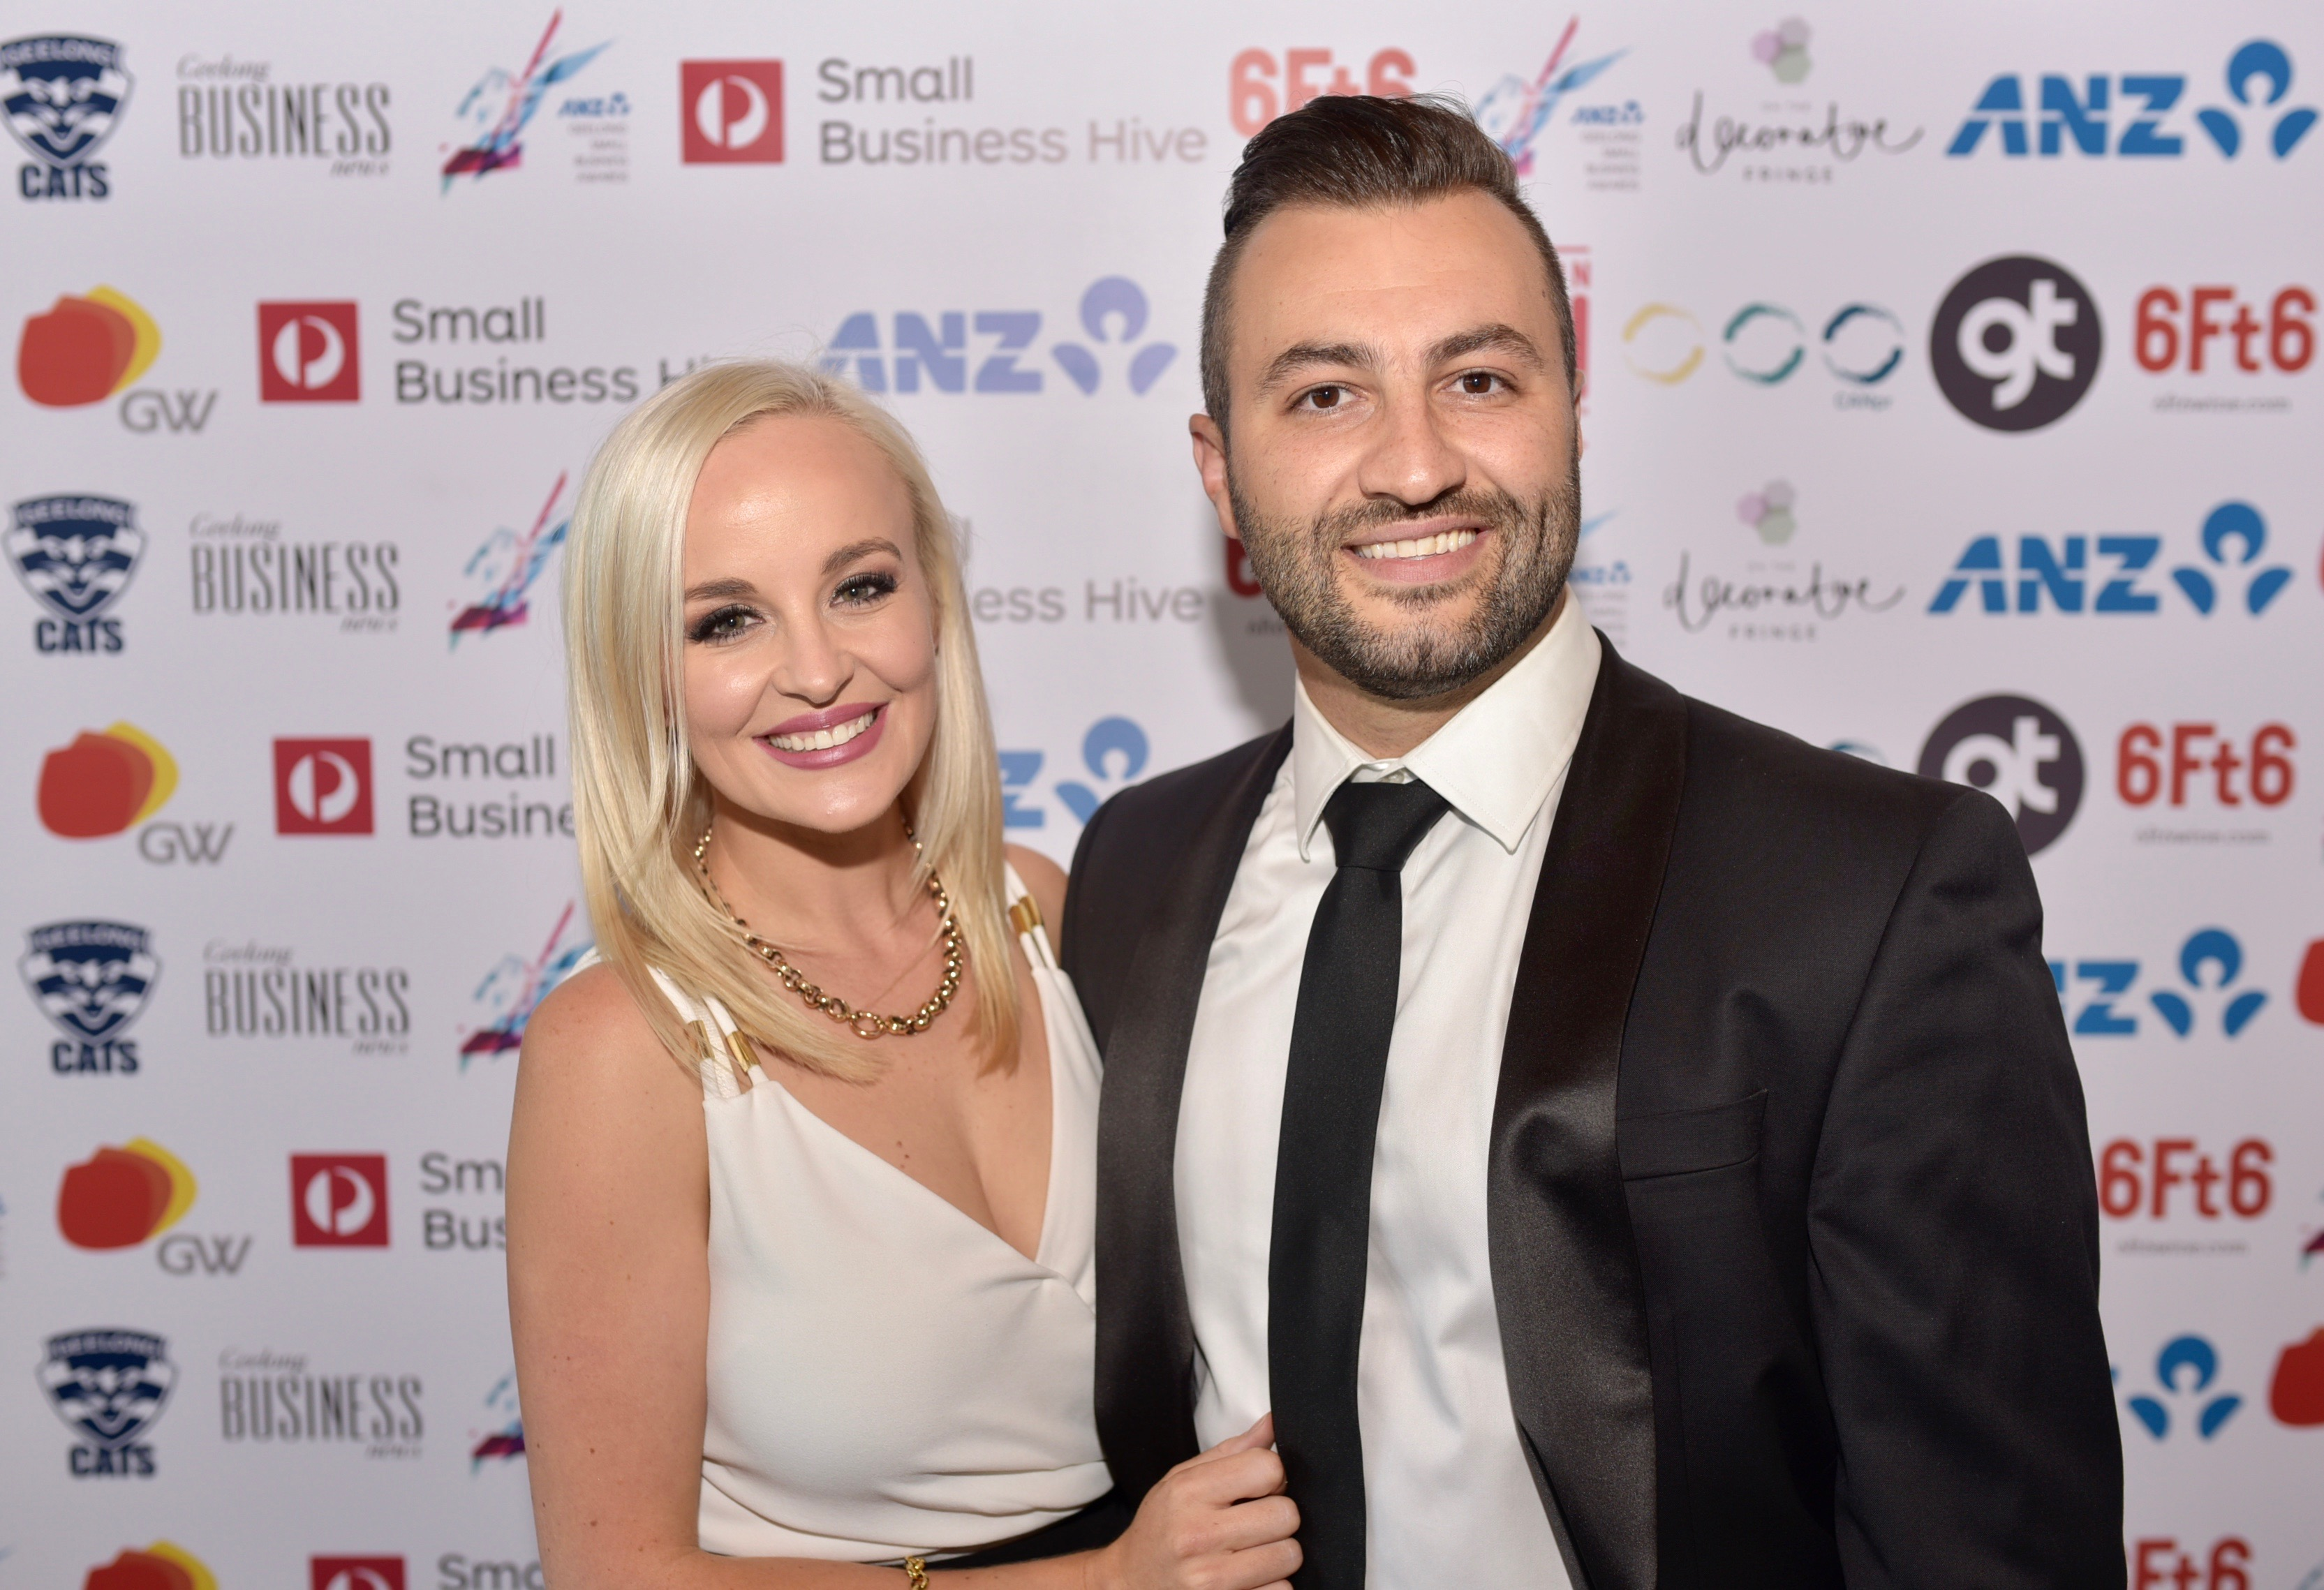 Geelong Small Business Awards6